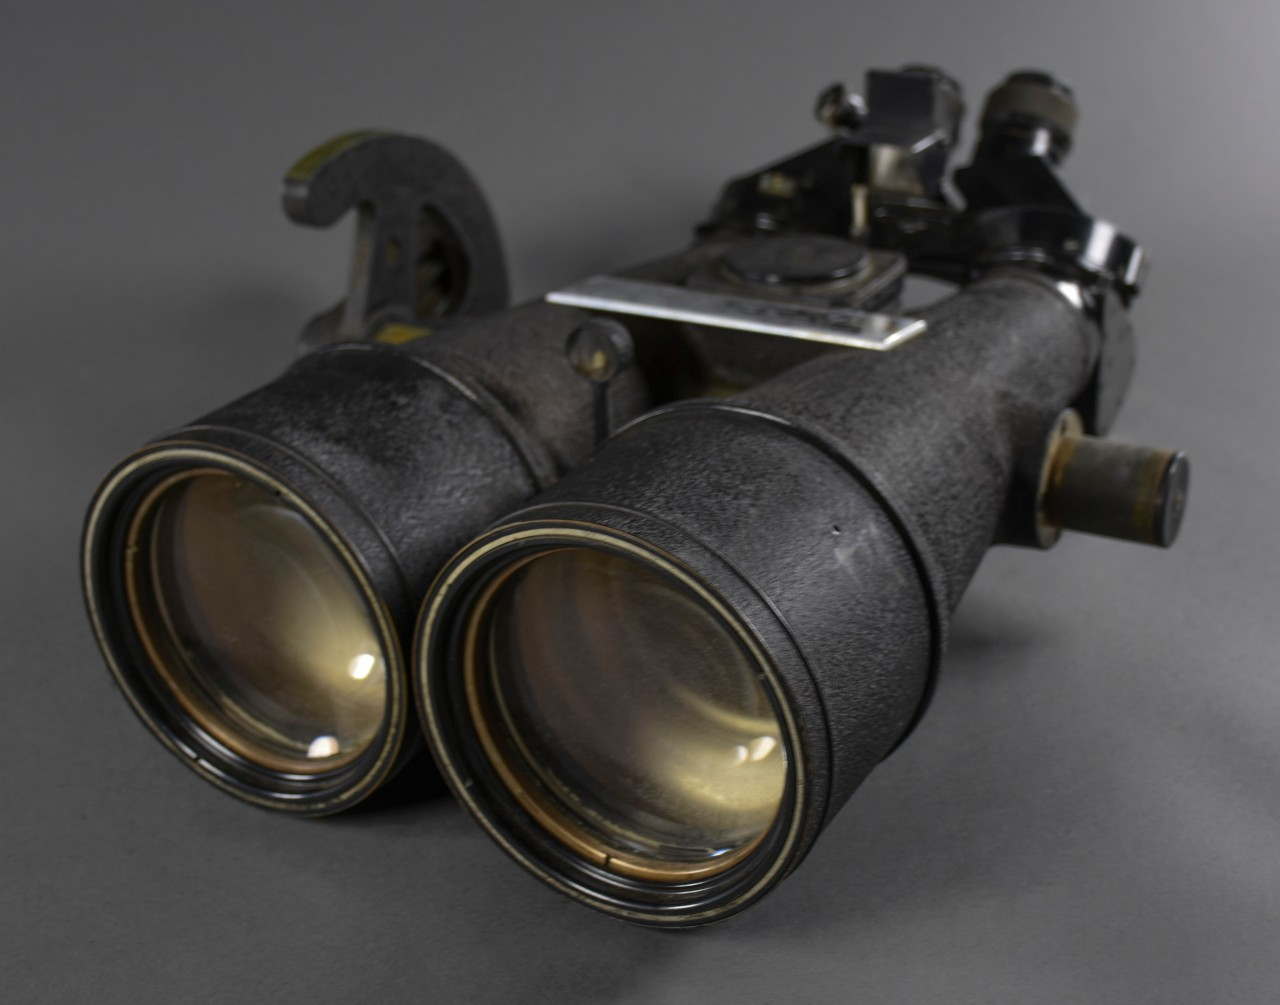 <p>Black Big Eye Binoculars with presentation plaque on top. Japanese characters on various sections of the binoculars&nbsp;</p>